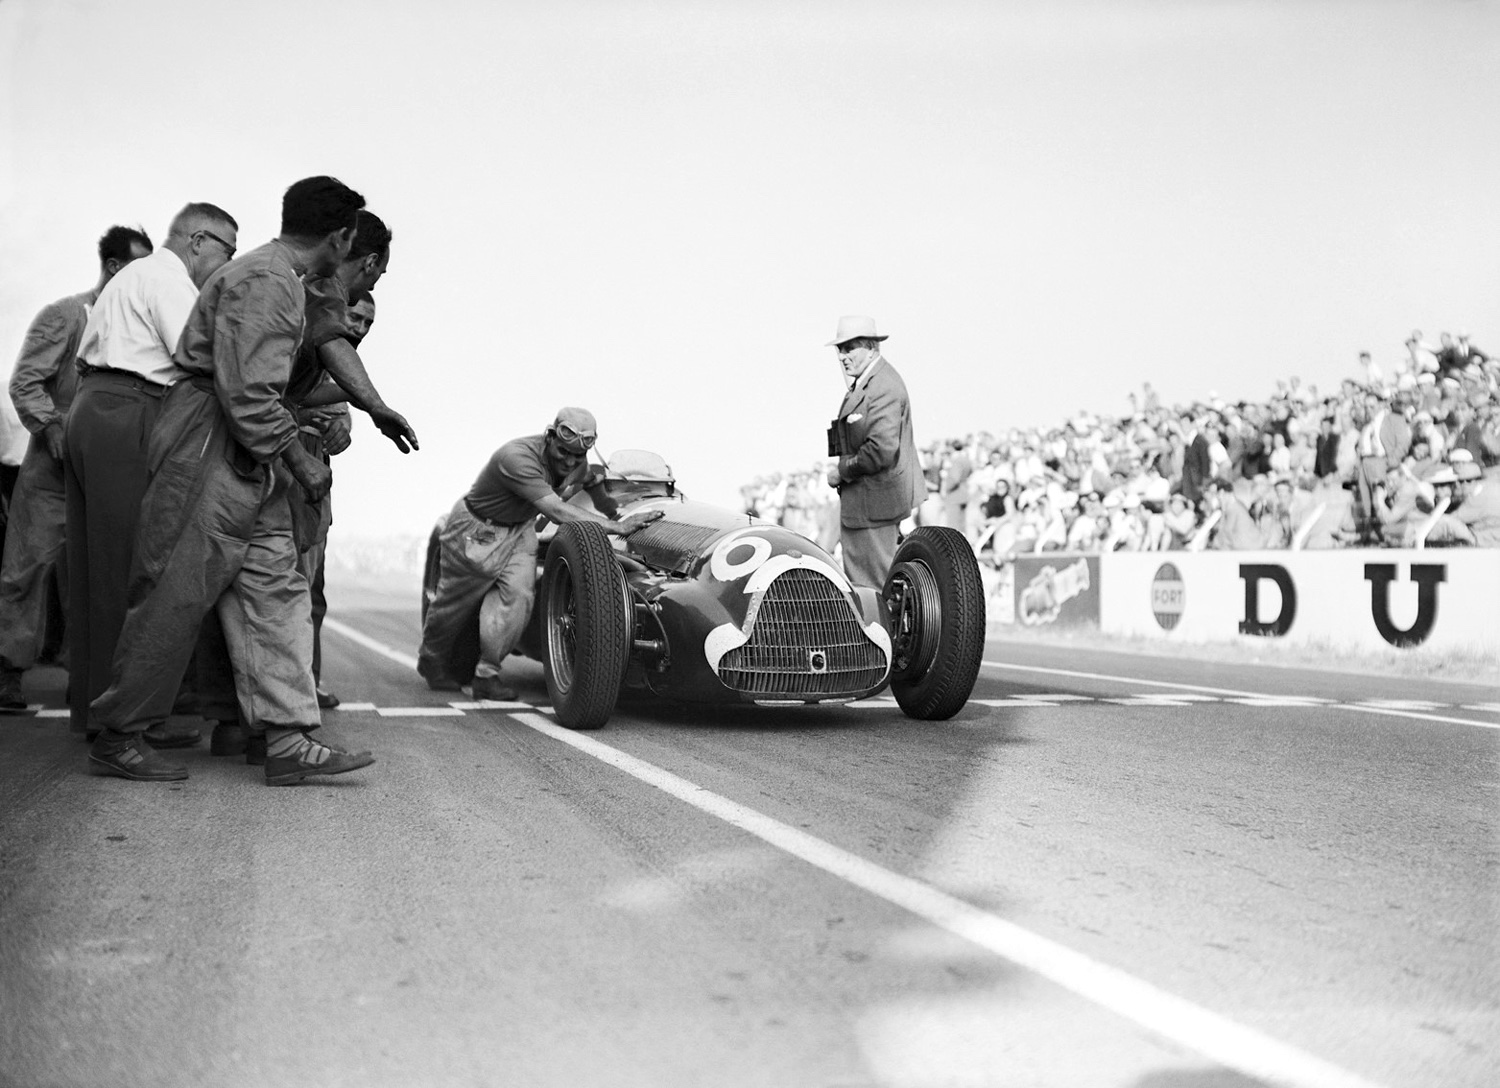 For The Thrill of Speed - Reims 1951